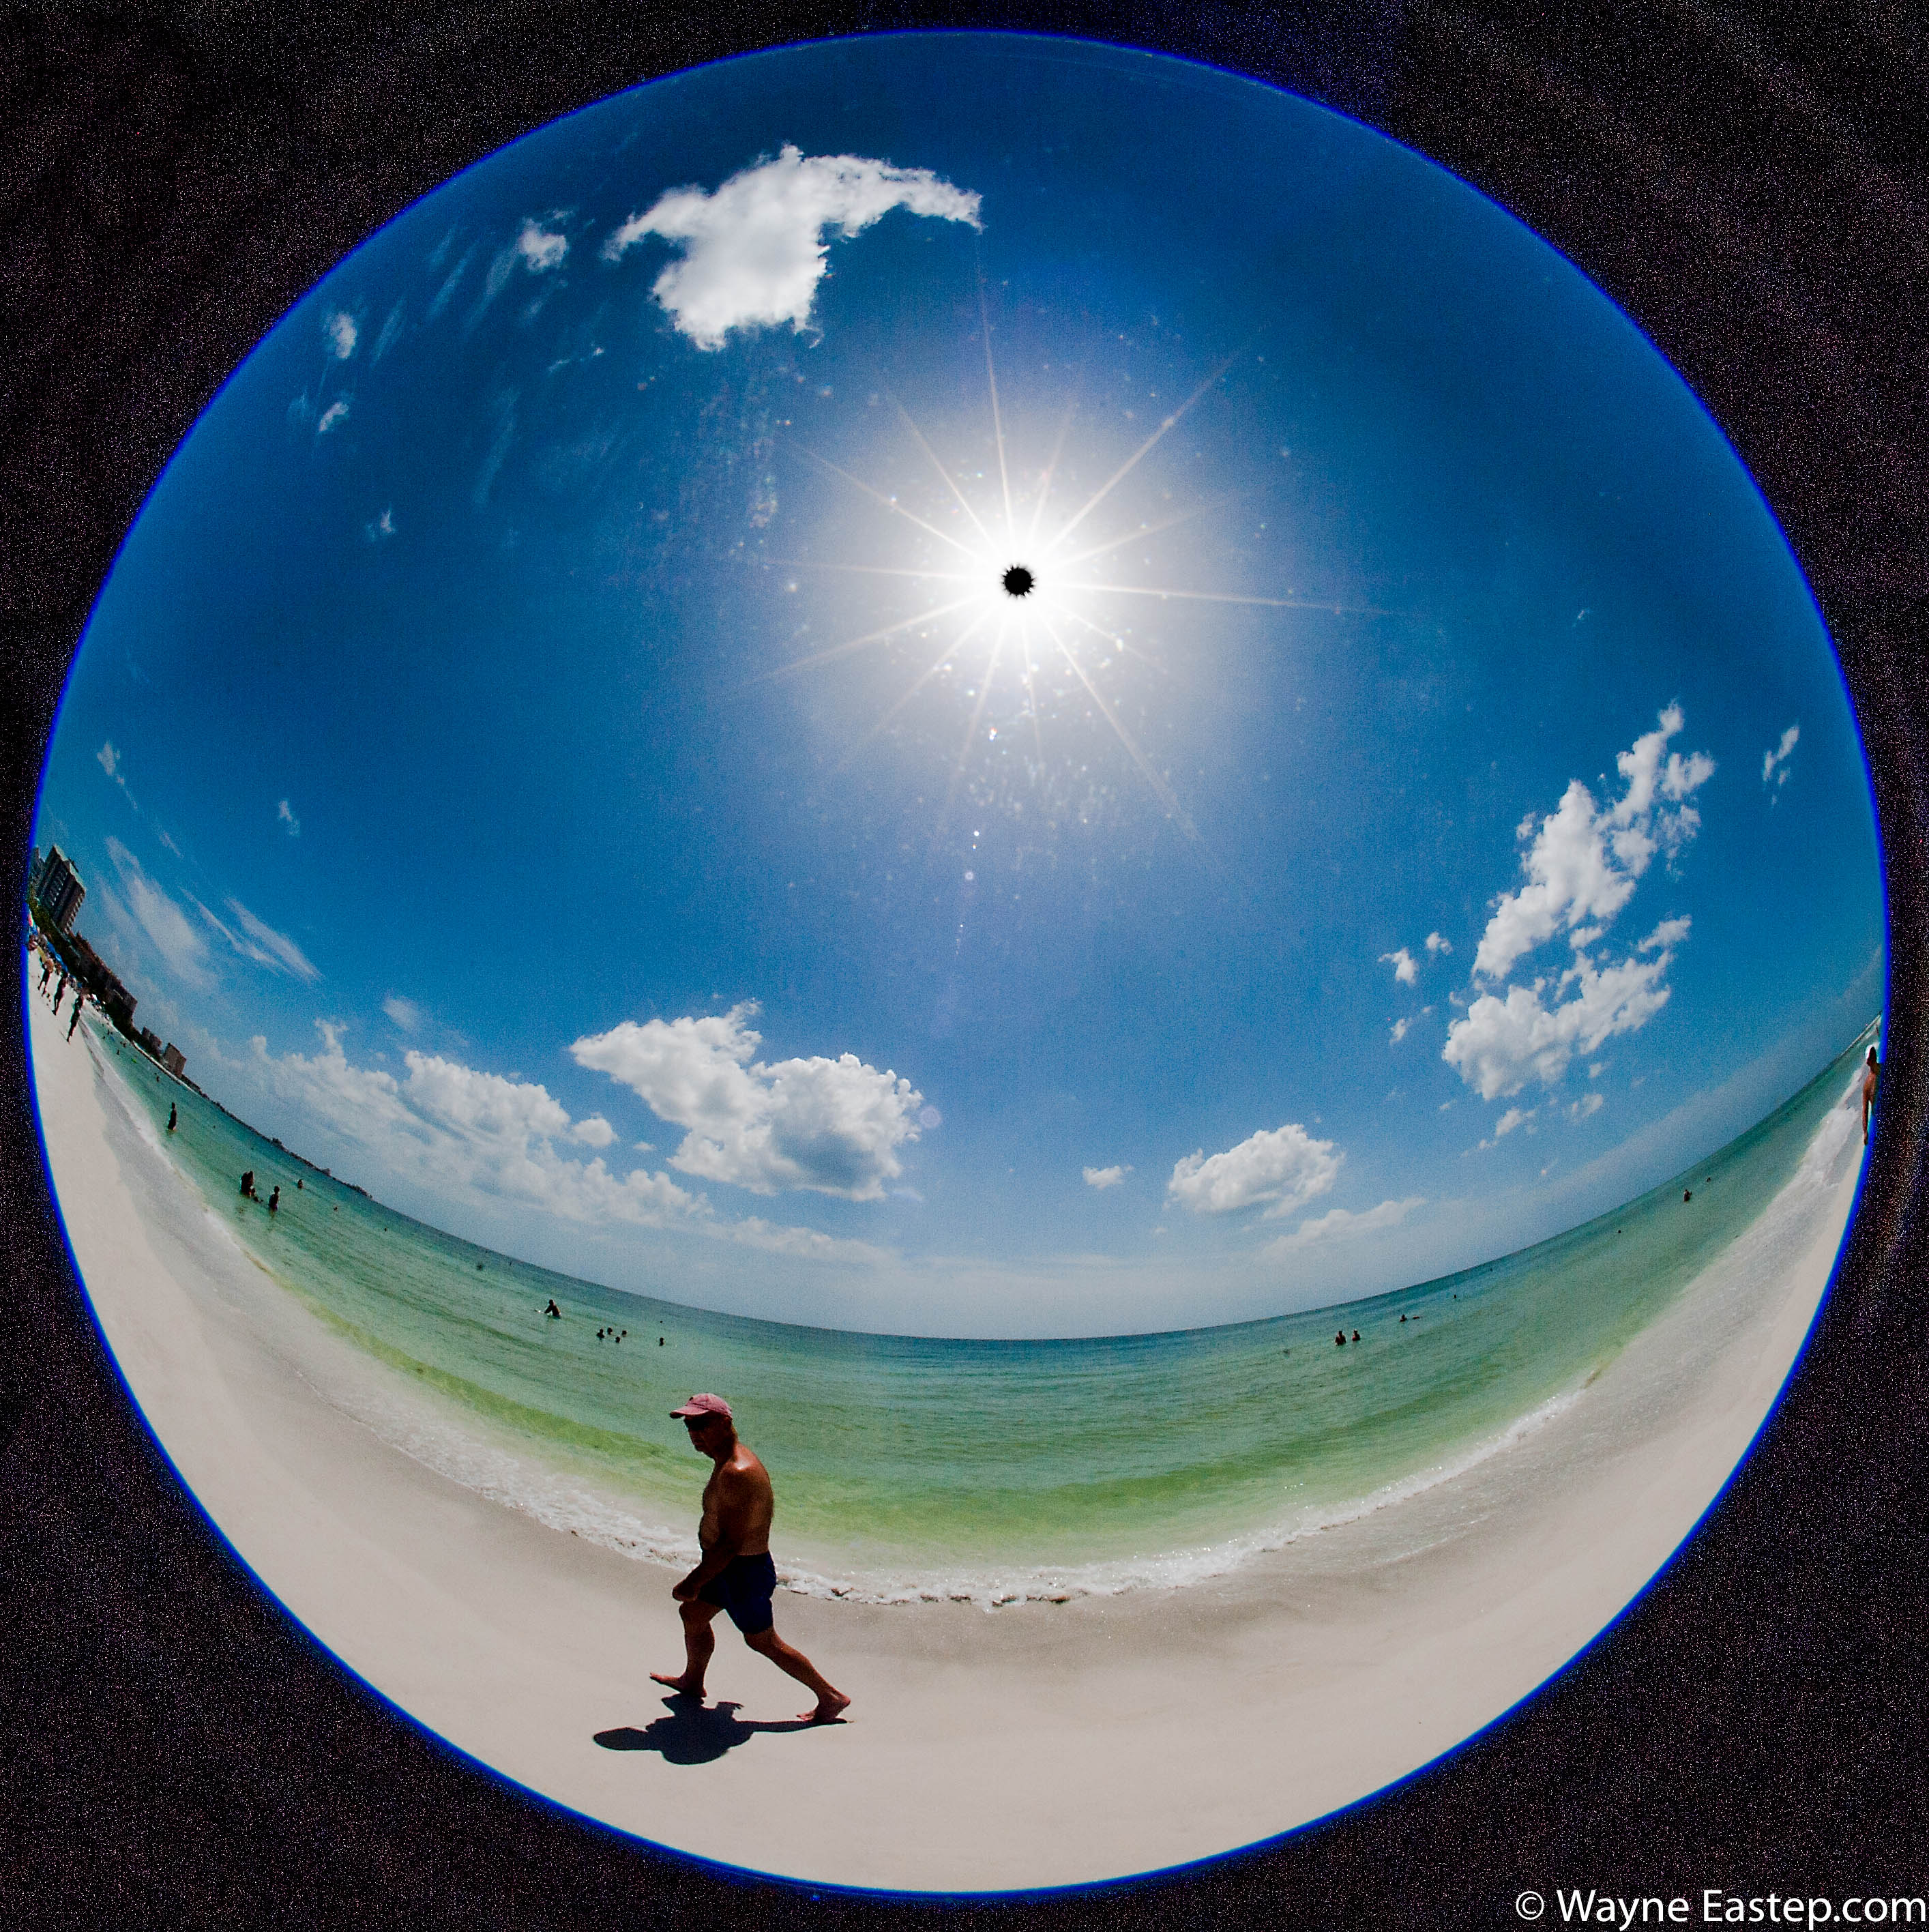 #WayneEastep #photogapher #photography #images #photos nature photography # #2017Solar Eclipse #ArtforInteriors, #ArtSpecifier #Photographs*#color #DisplayArt #Eclipse* #Florida #Graphicimage, #InteriorDesign #moon #Nature #photo #photograph #picture #Print, #Sarasota #SolarEclipse* #sun, #WallArt